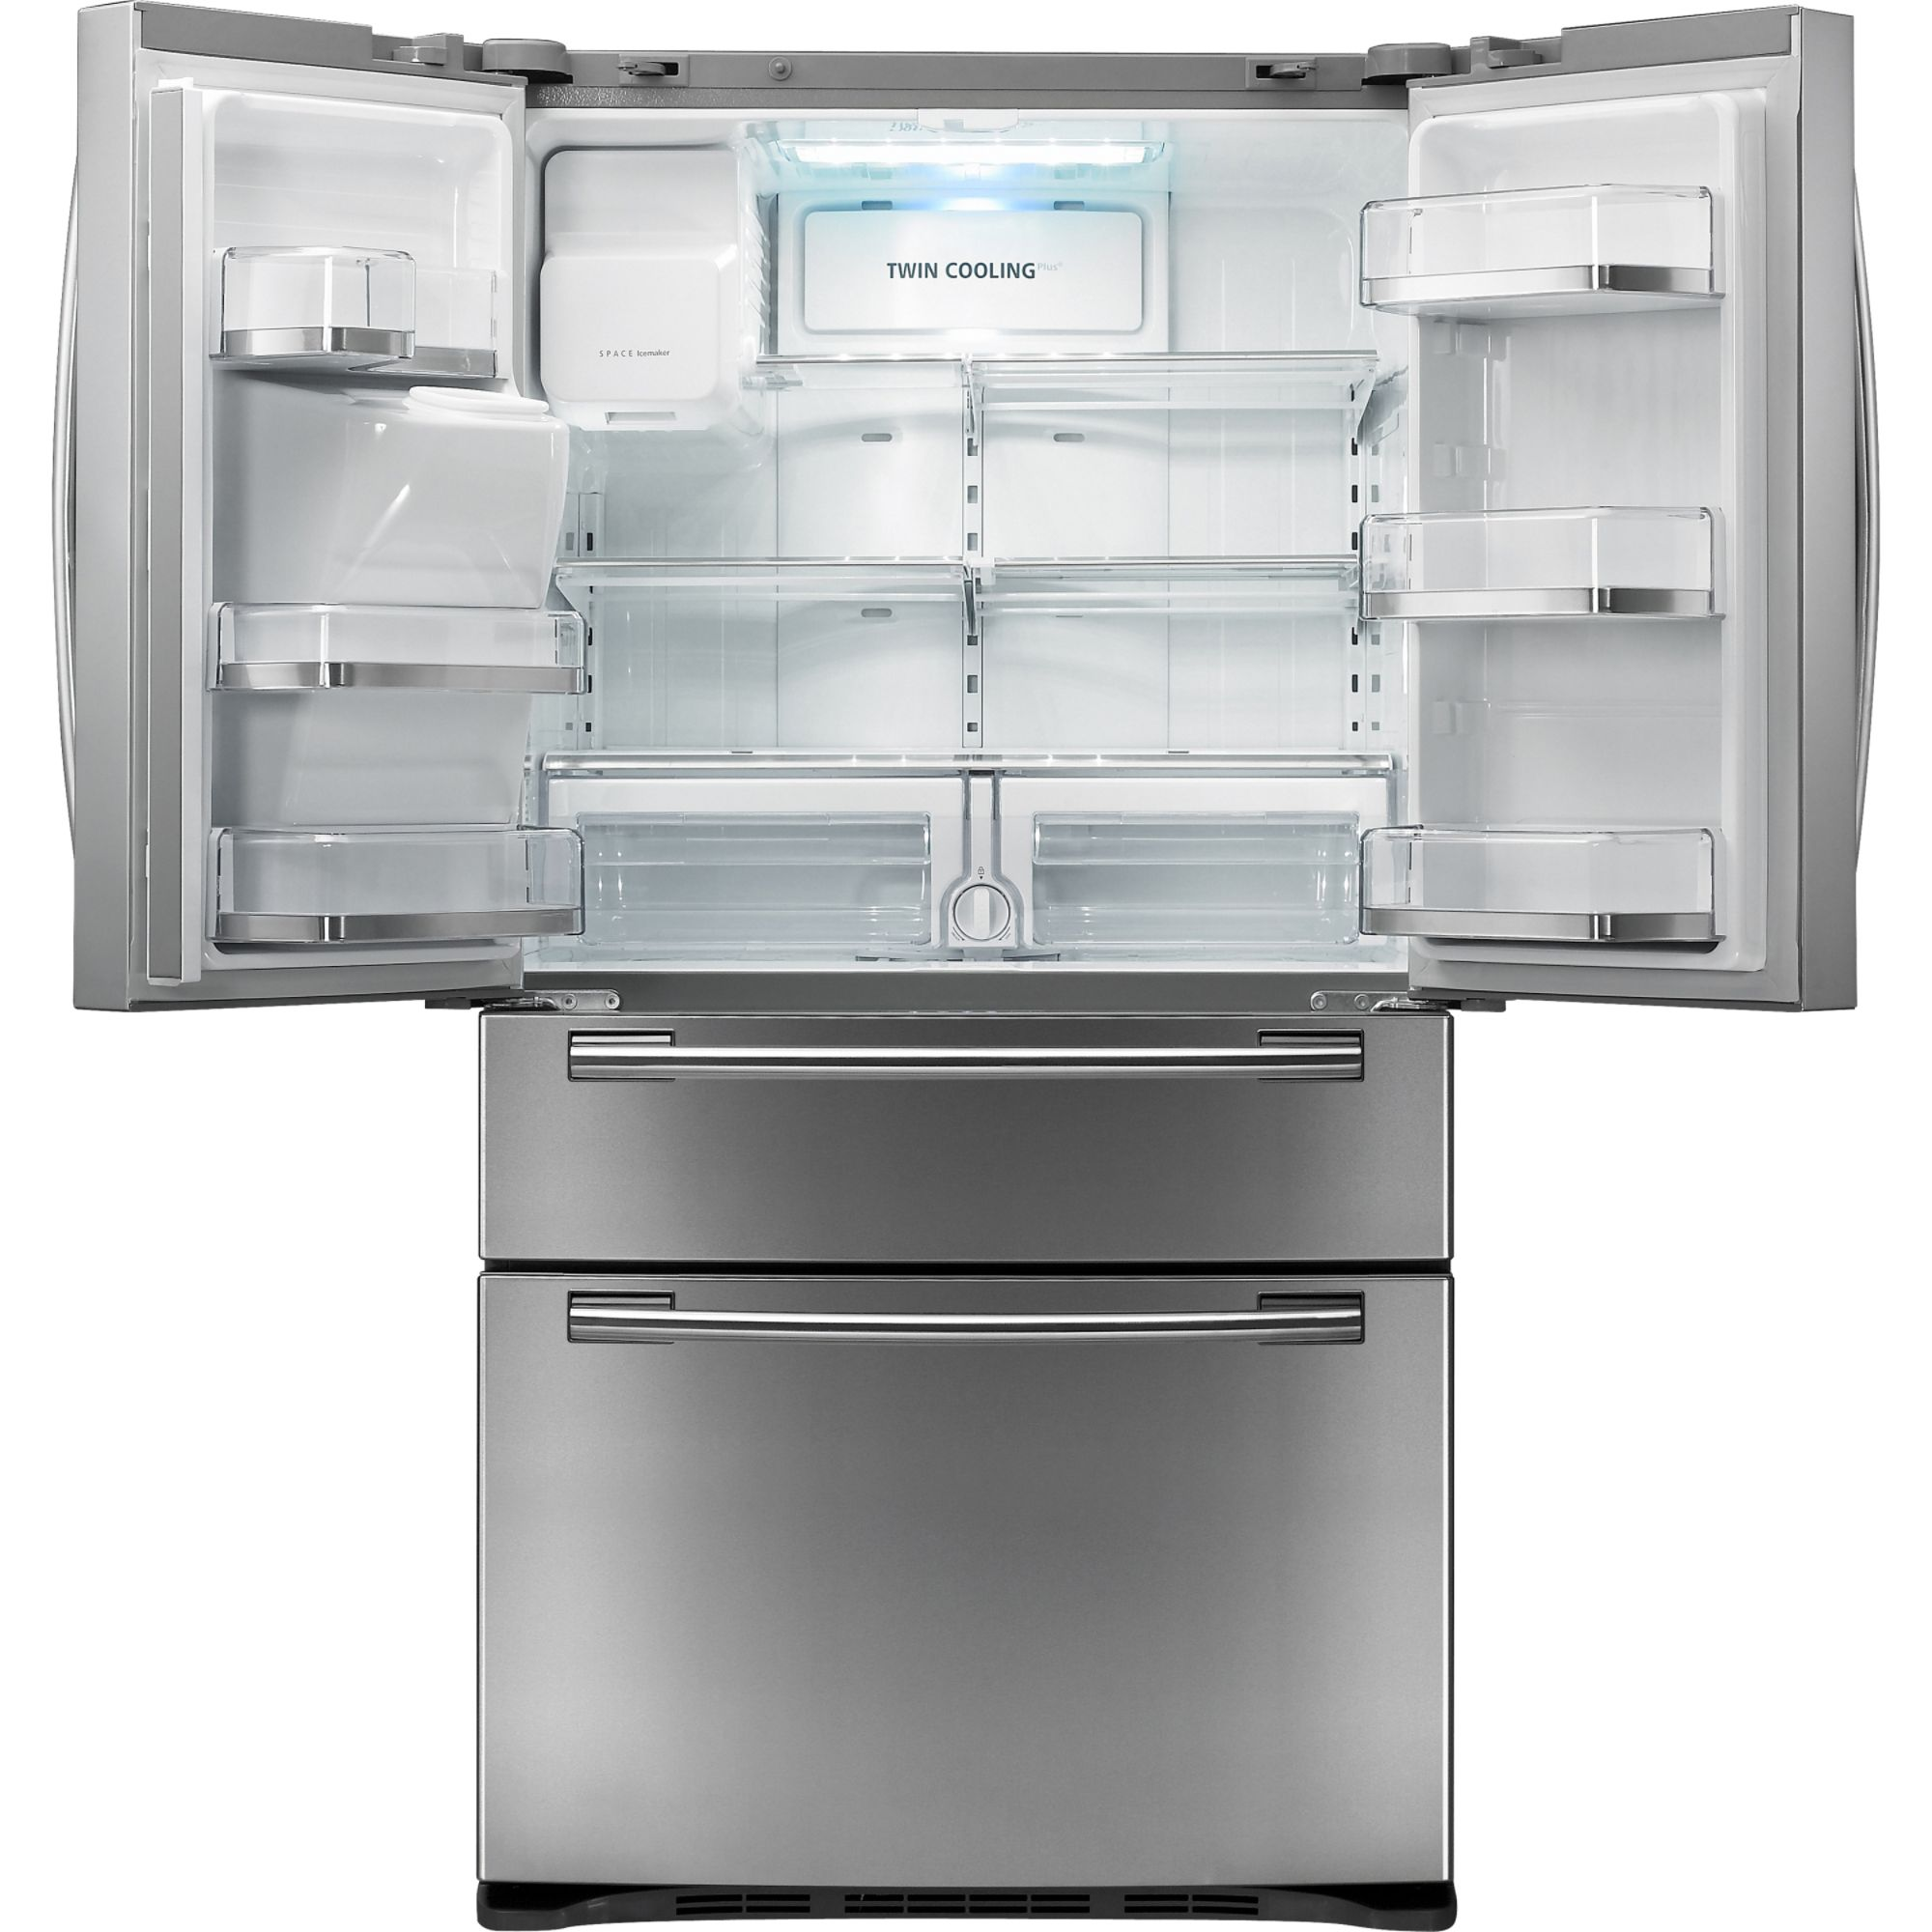 Samsung 28.0 cu. ft. Bottom-Freezer Refrigerator